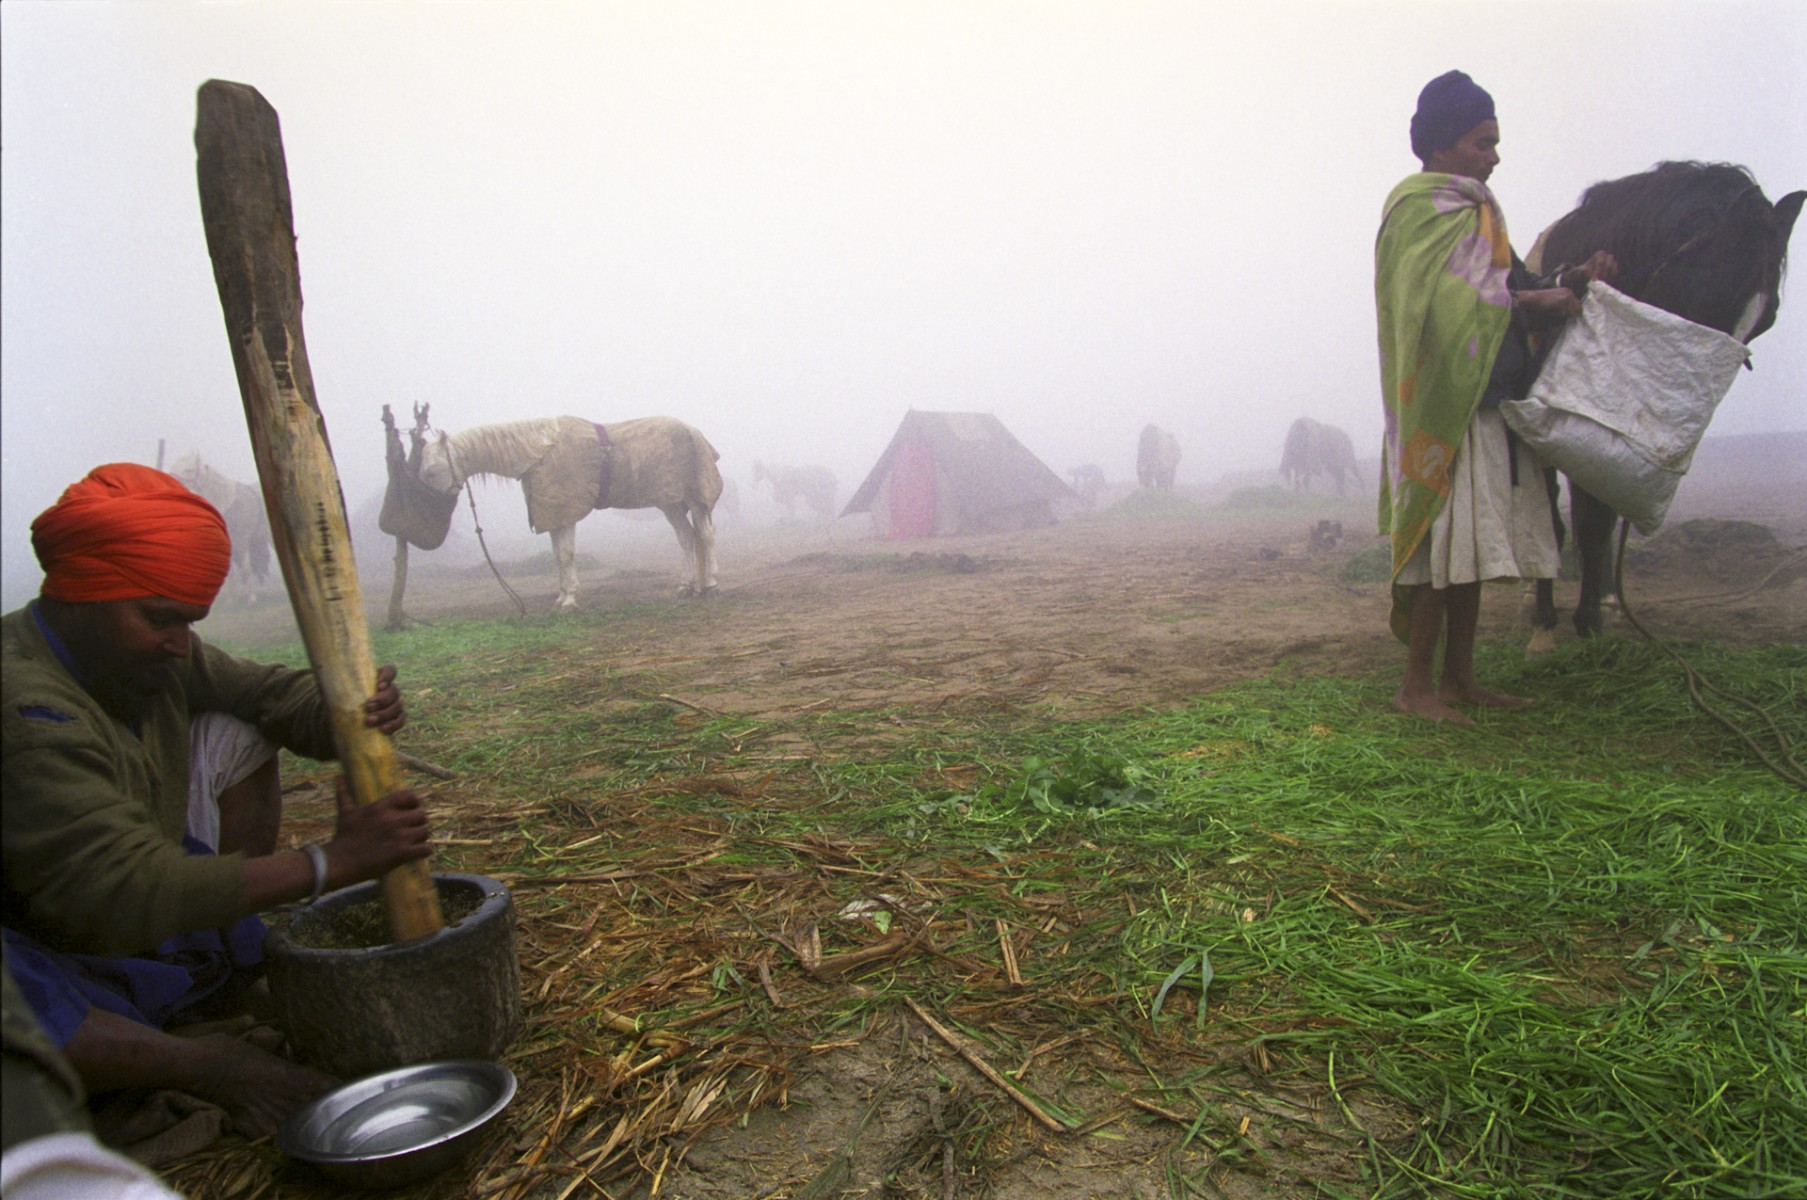 Preparing sukhar in the mist